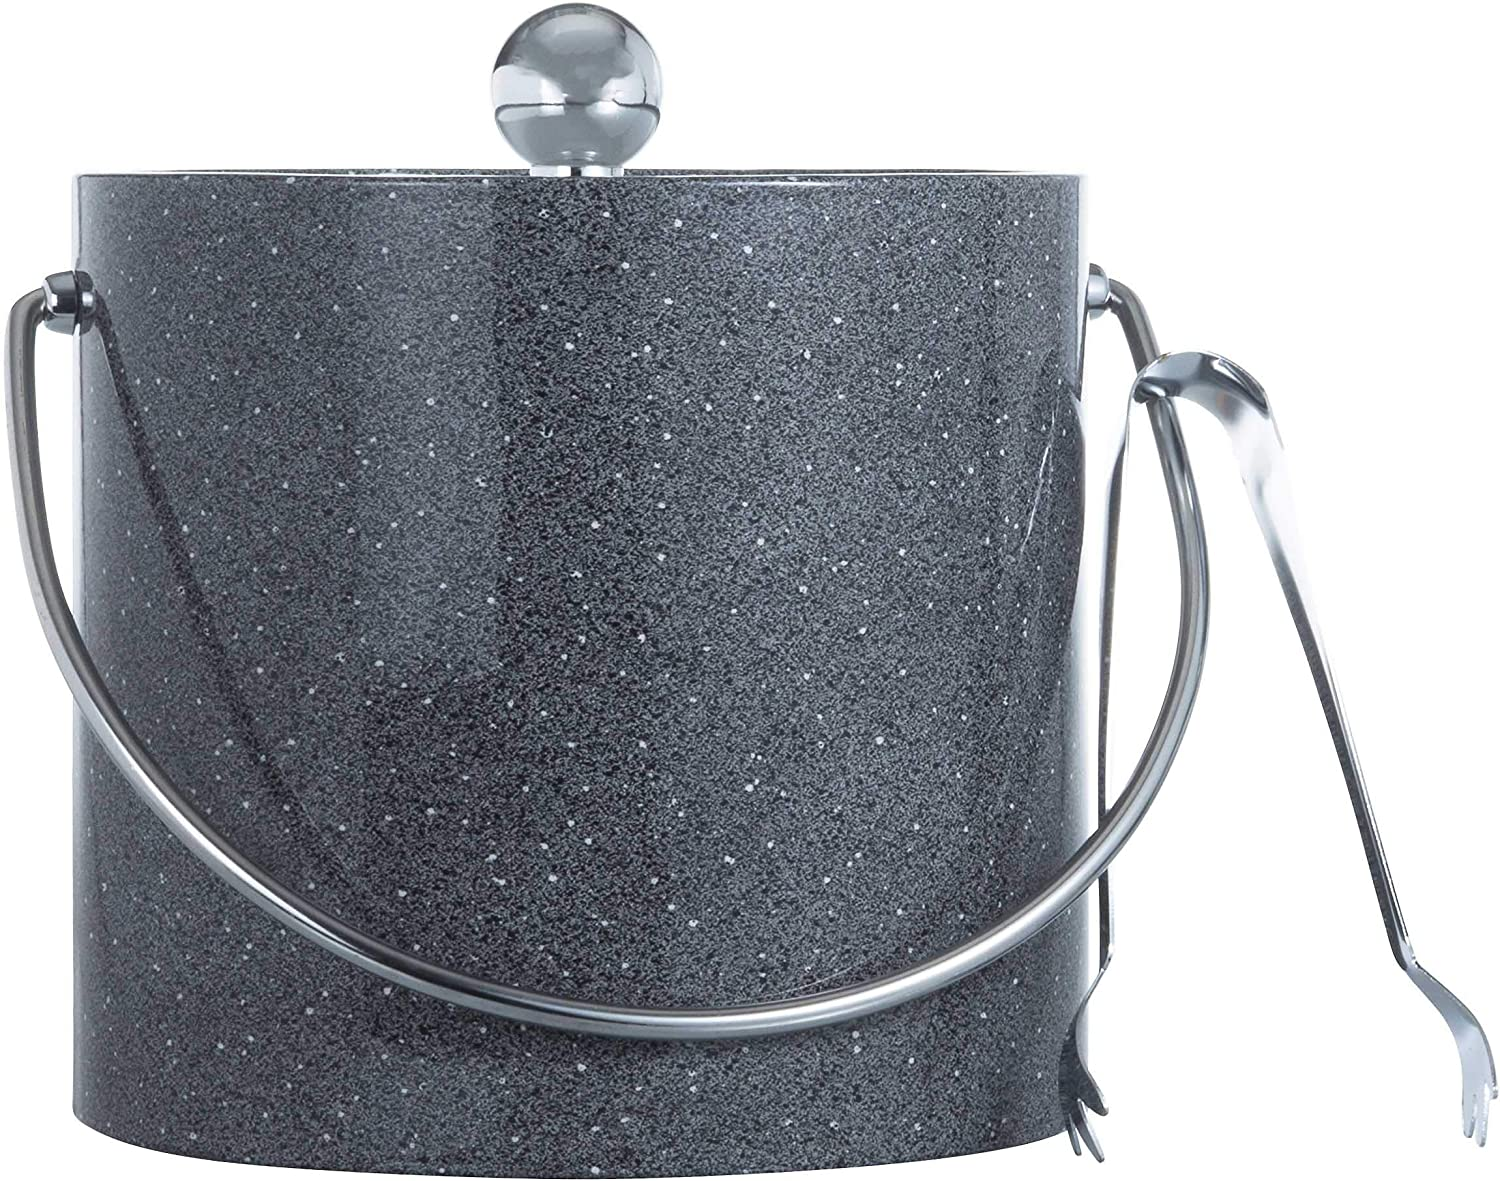 Finally popular brand Hand Made In Shipping included USA Granite Gray Insulated Walled 3-Quart Double Ic